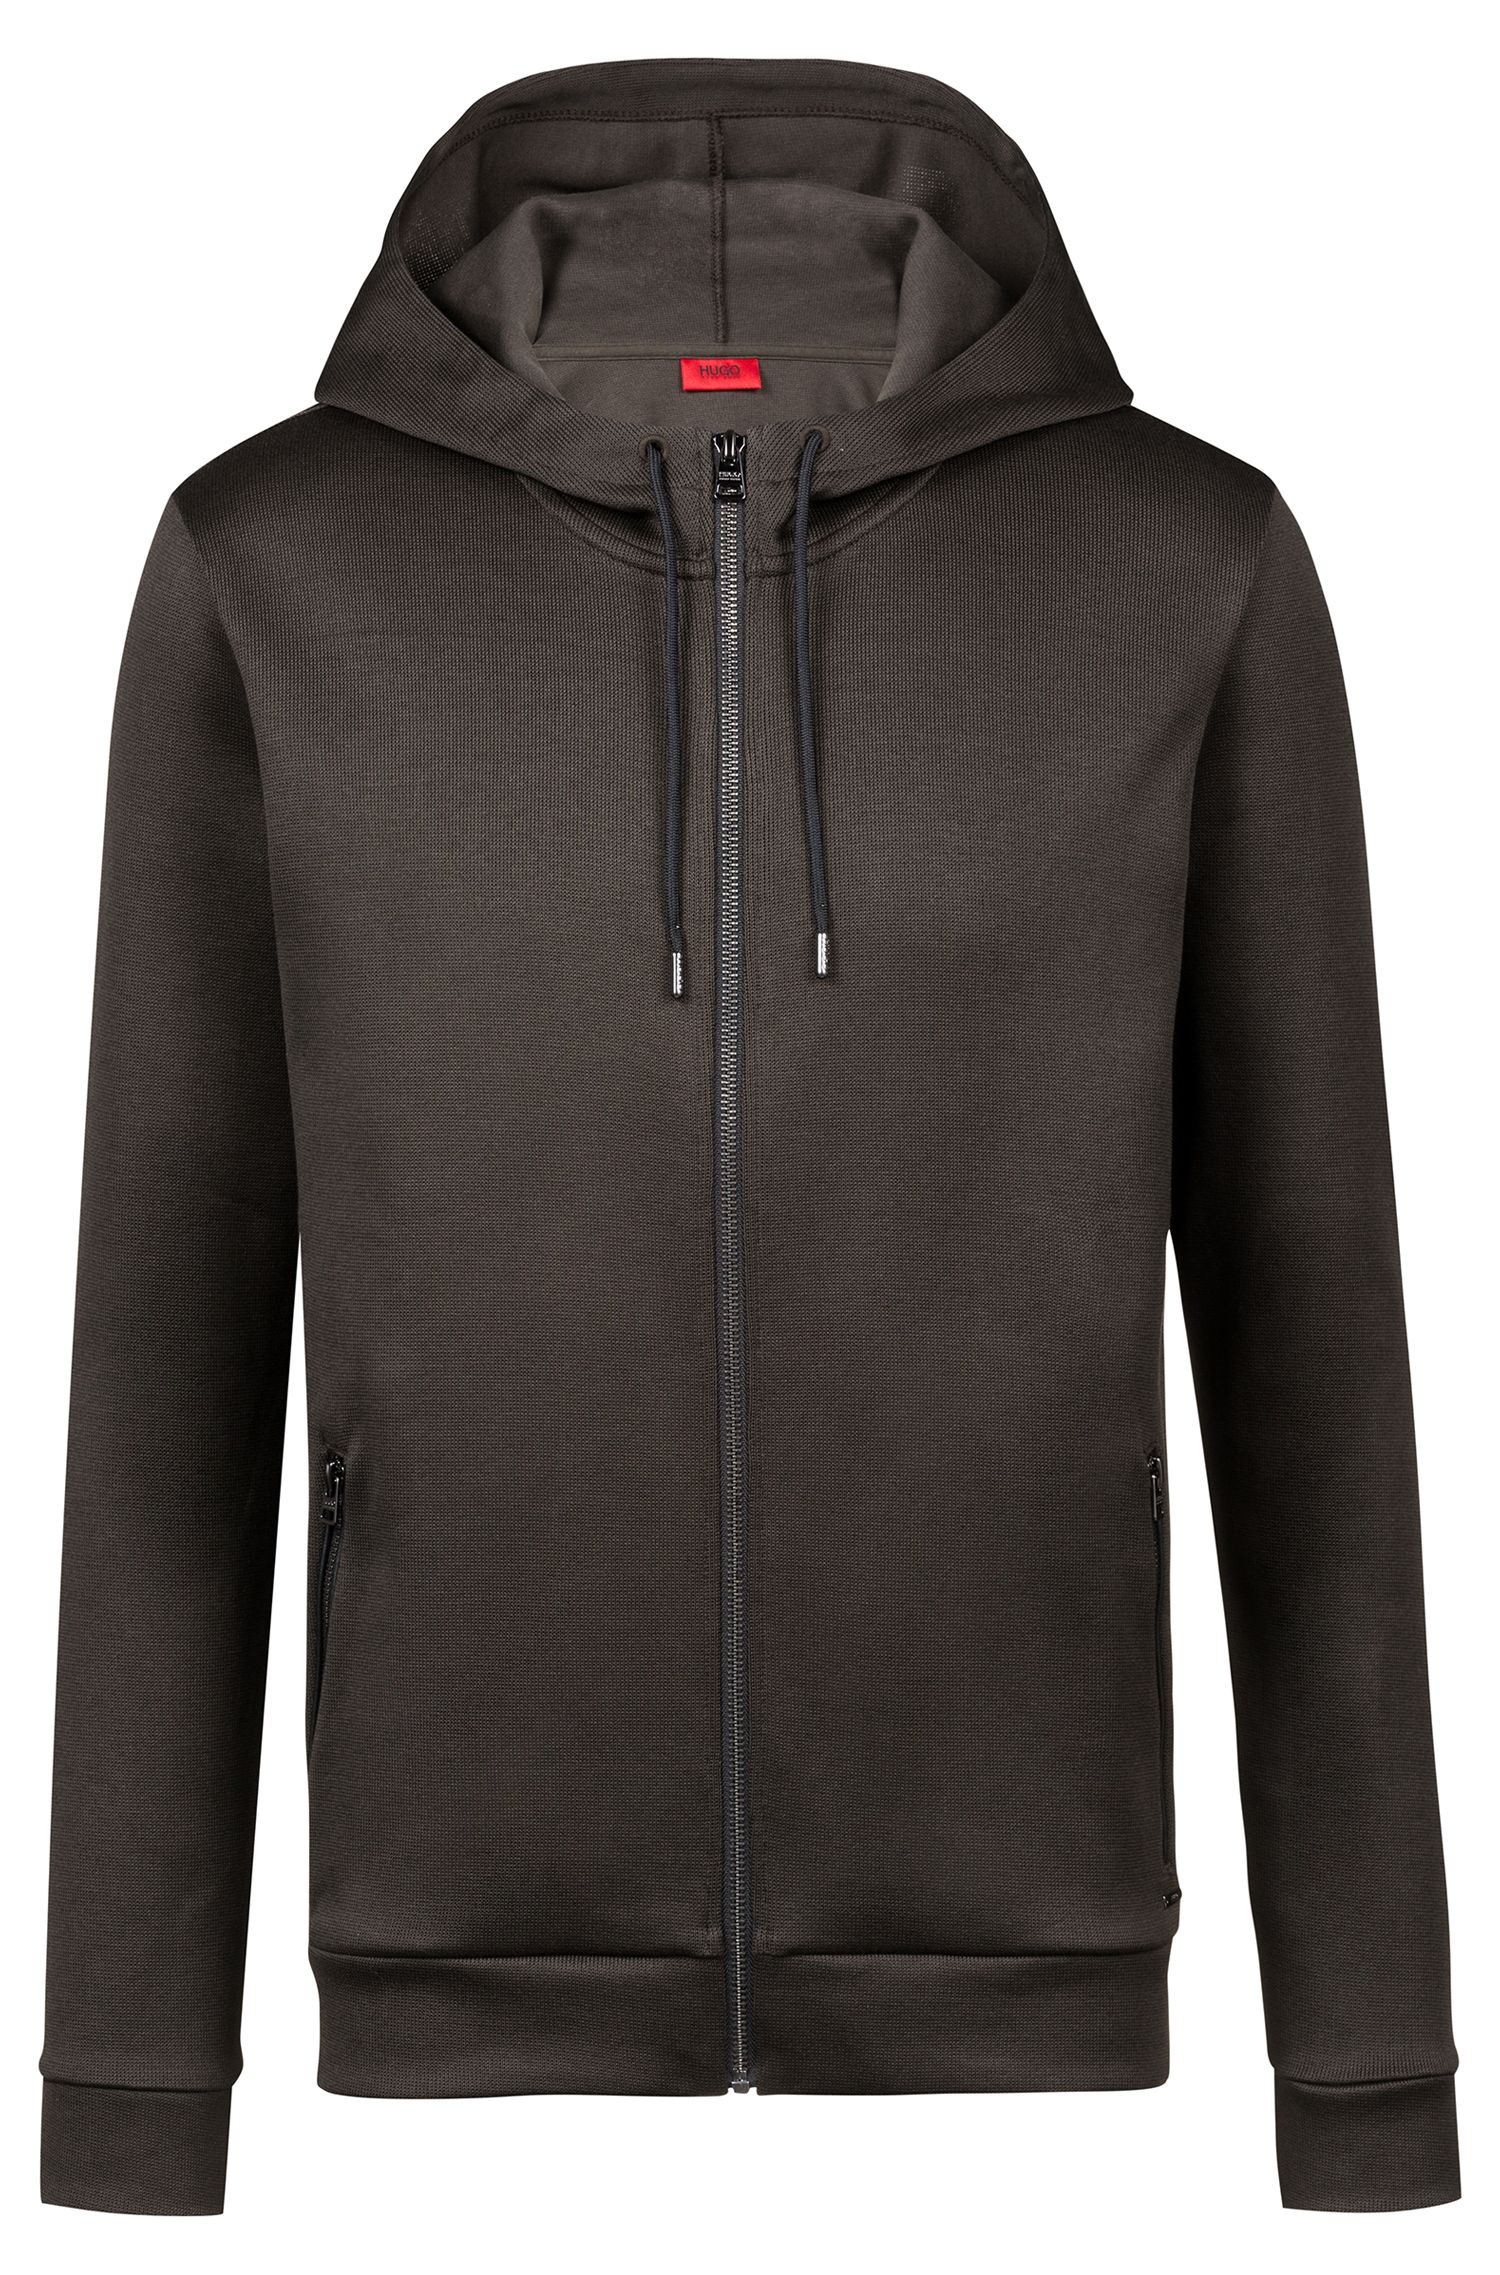 Relaxed-fit hooded sweatshirt in French rib cotton, Dark Green